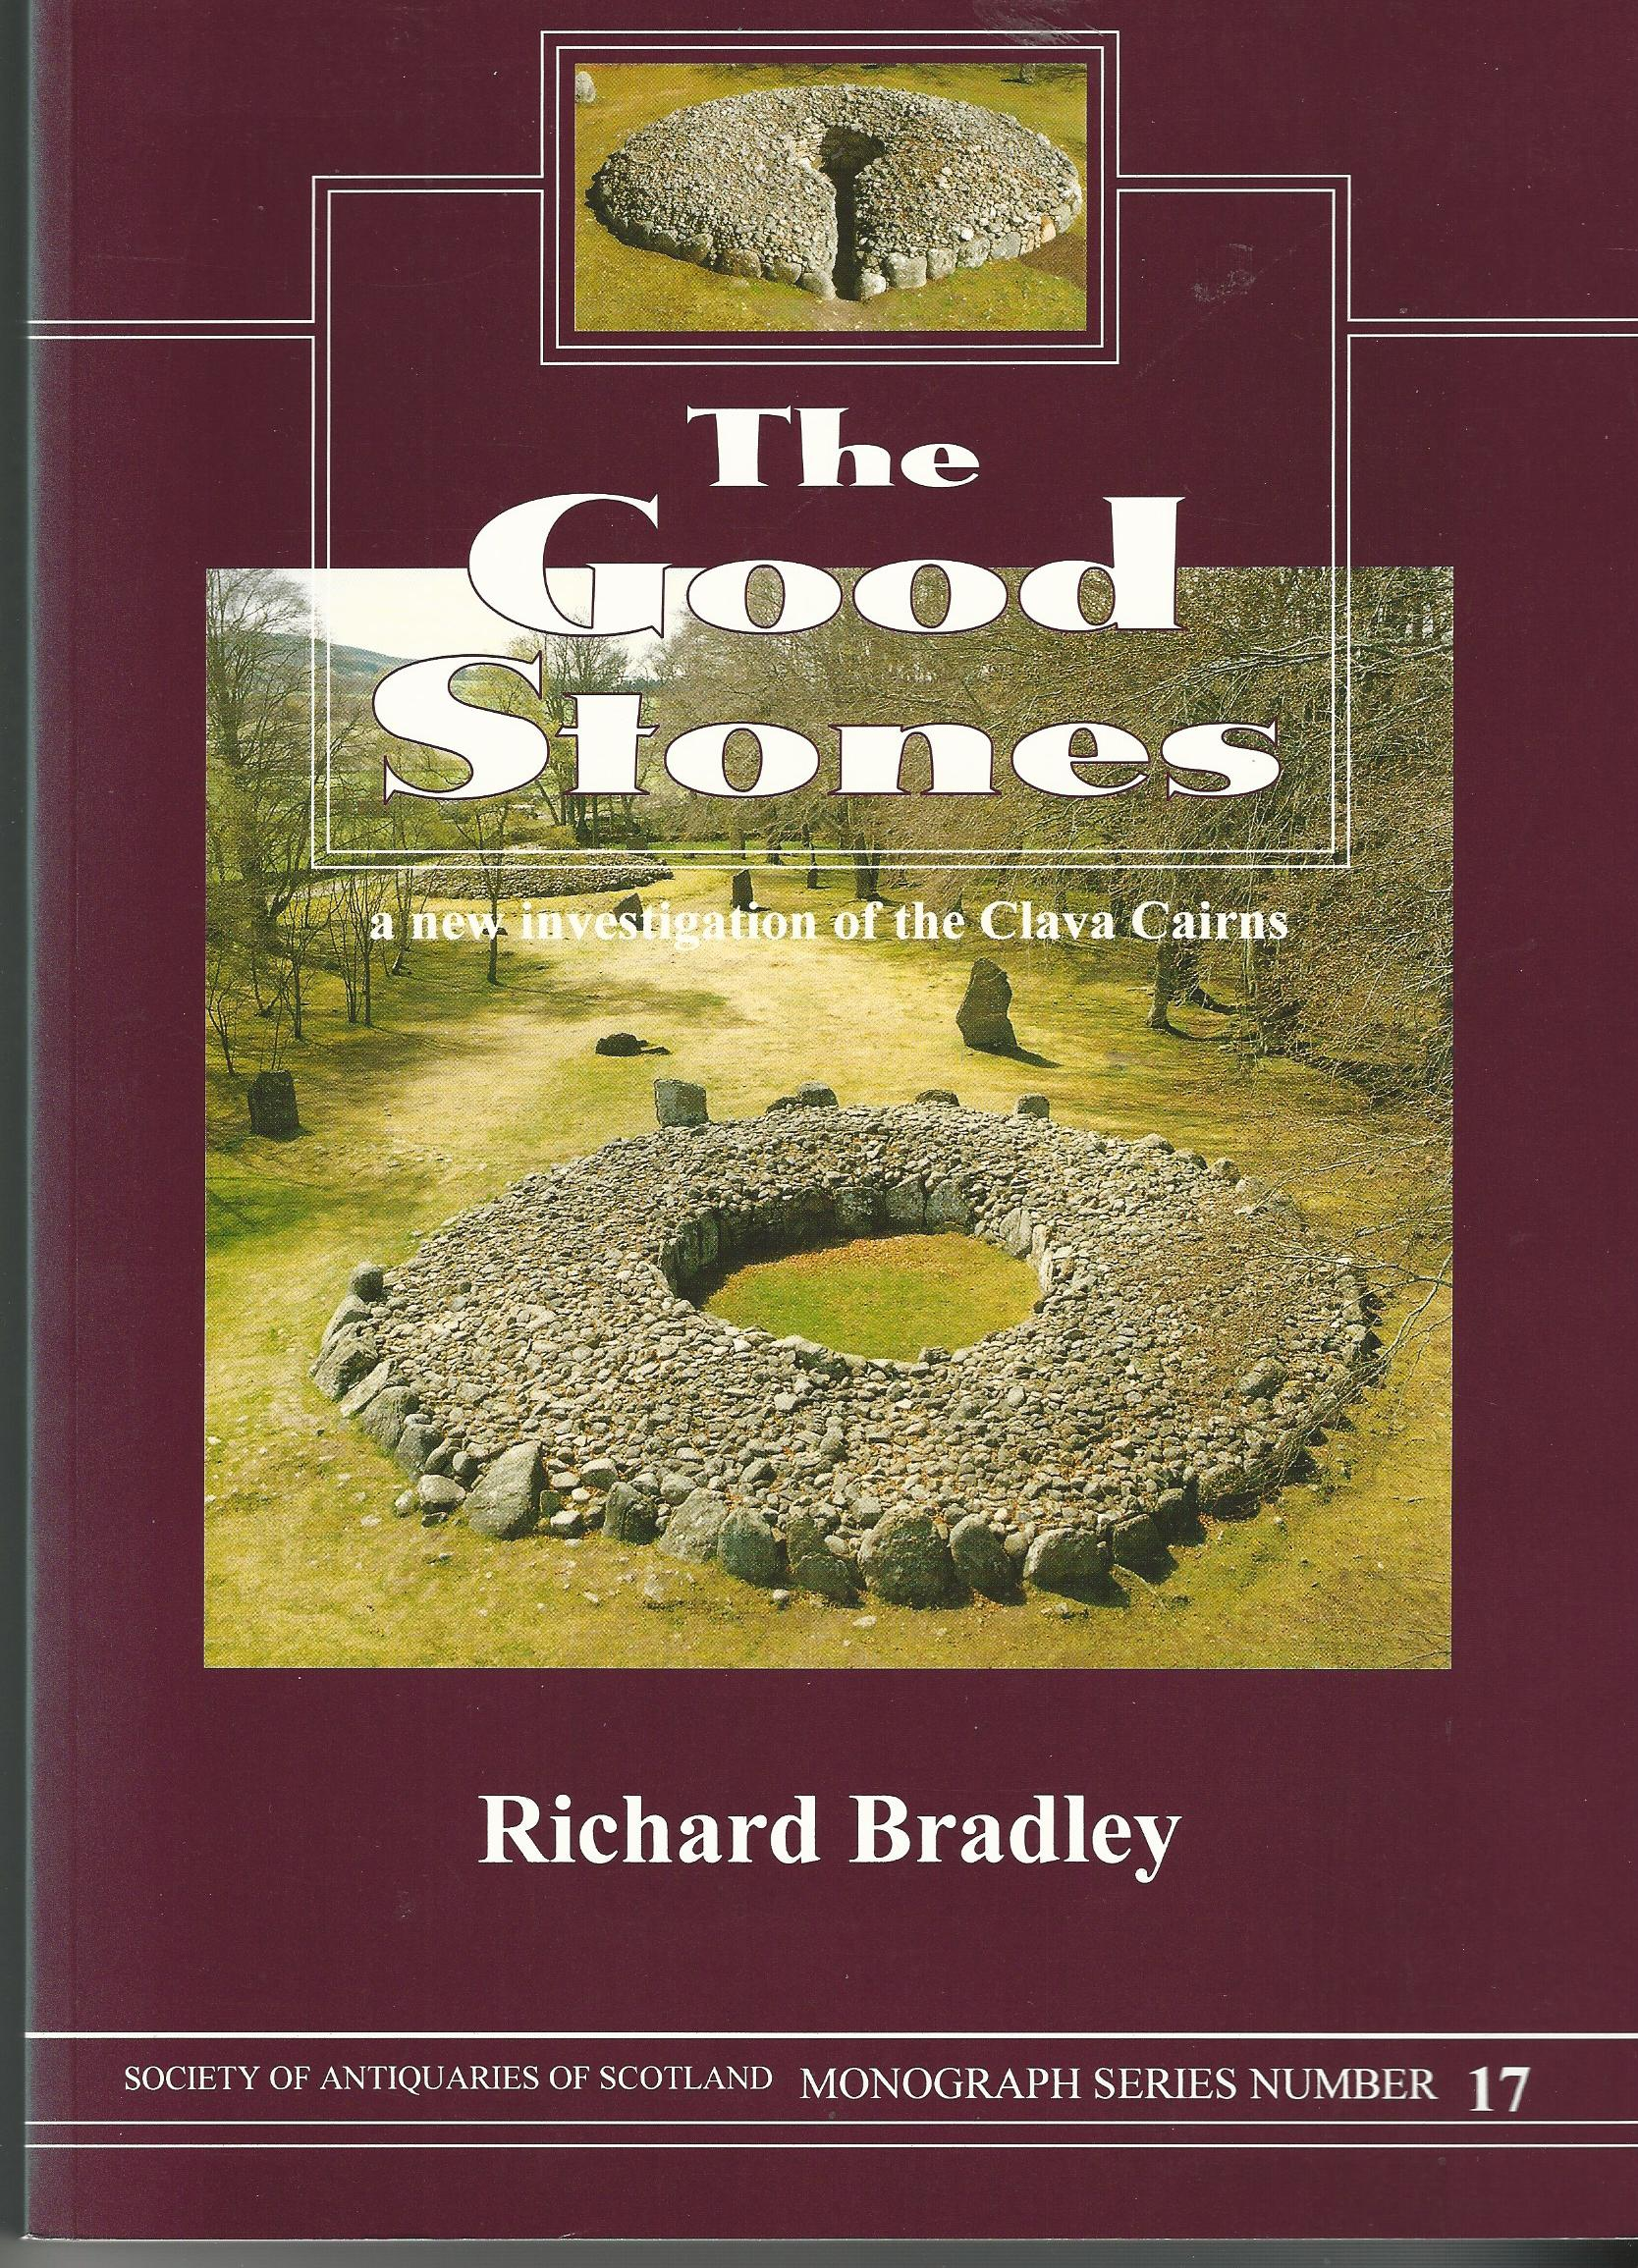 Image for The Good Stones: Clava Cairns. Society of Antiquaries of Scotland Monograph Series number 17.